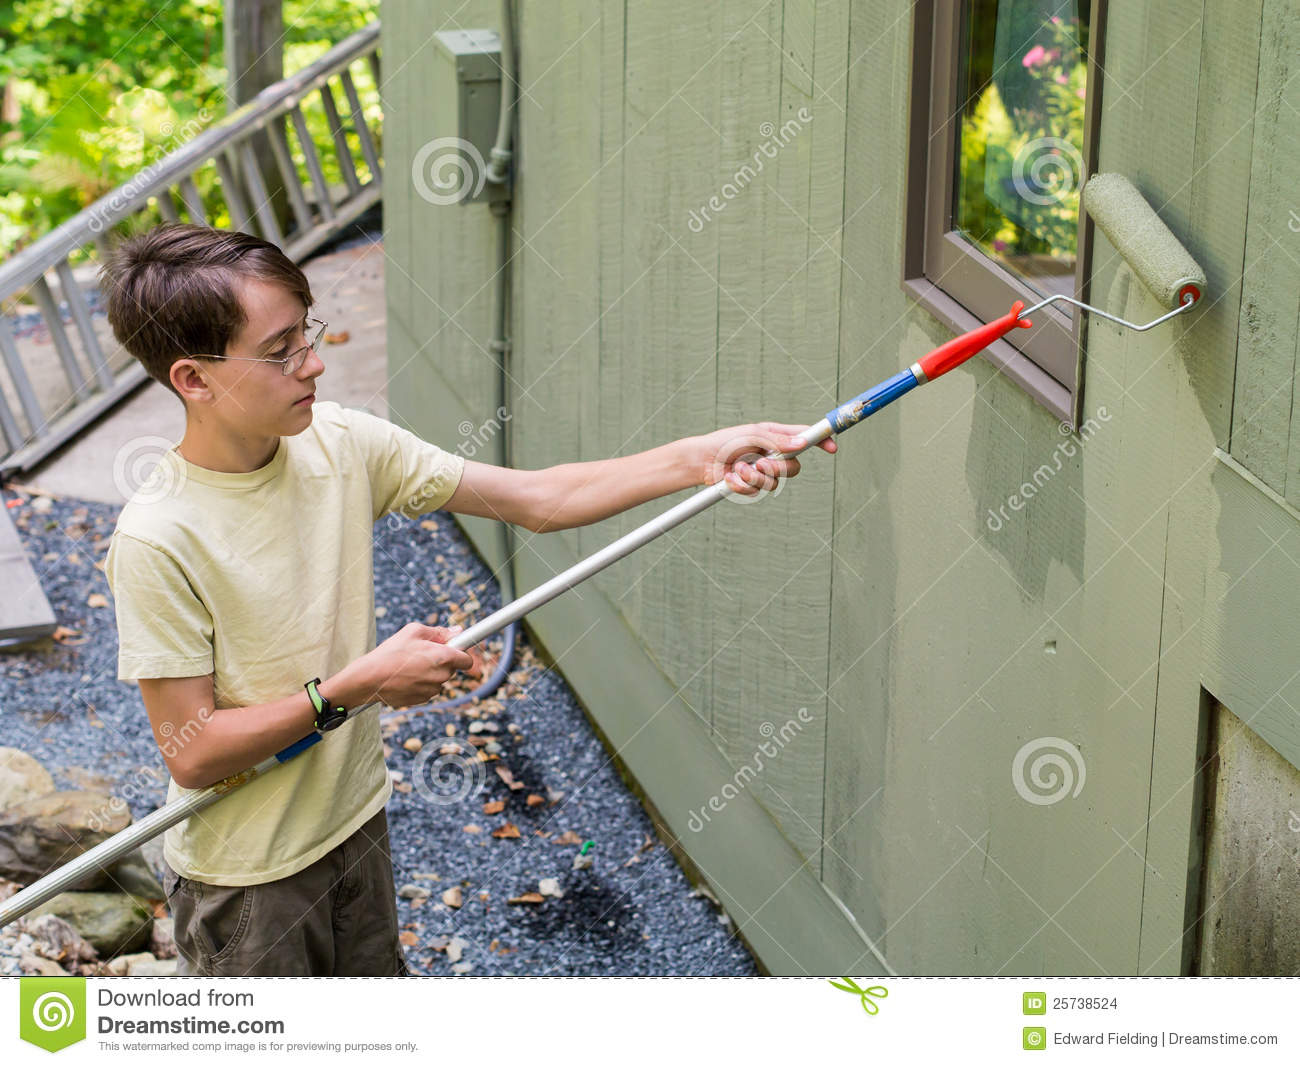 teenager summer job painting the house stock images image 25738524 teenager summer job painting the house